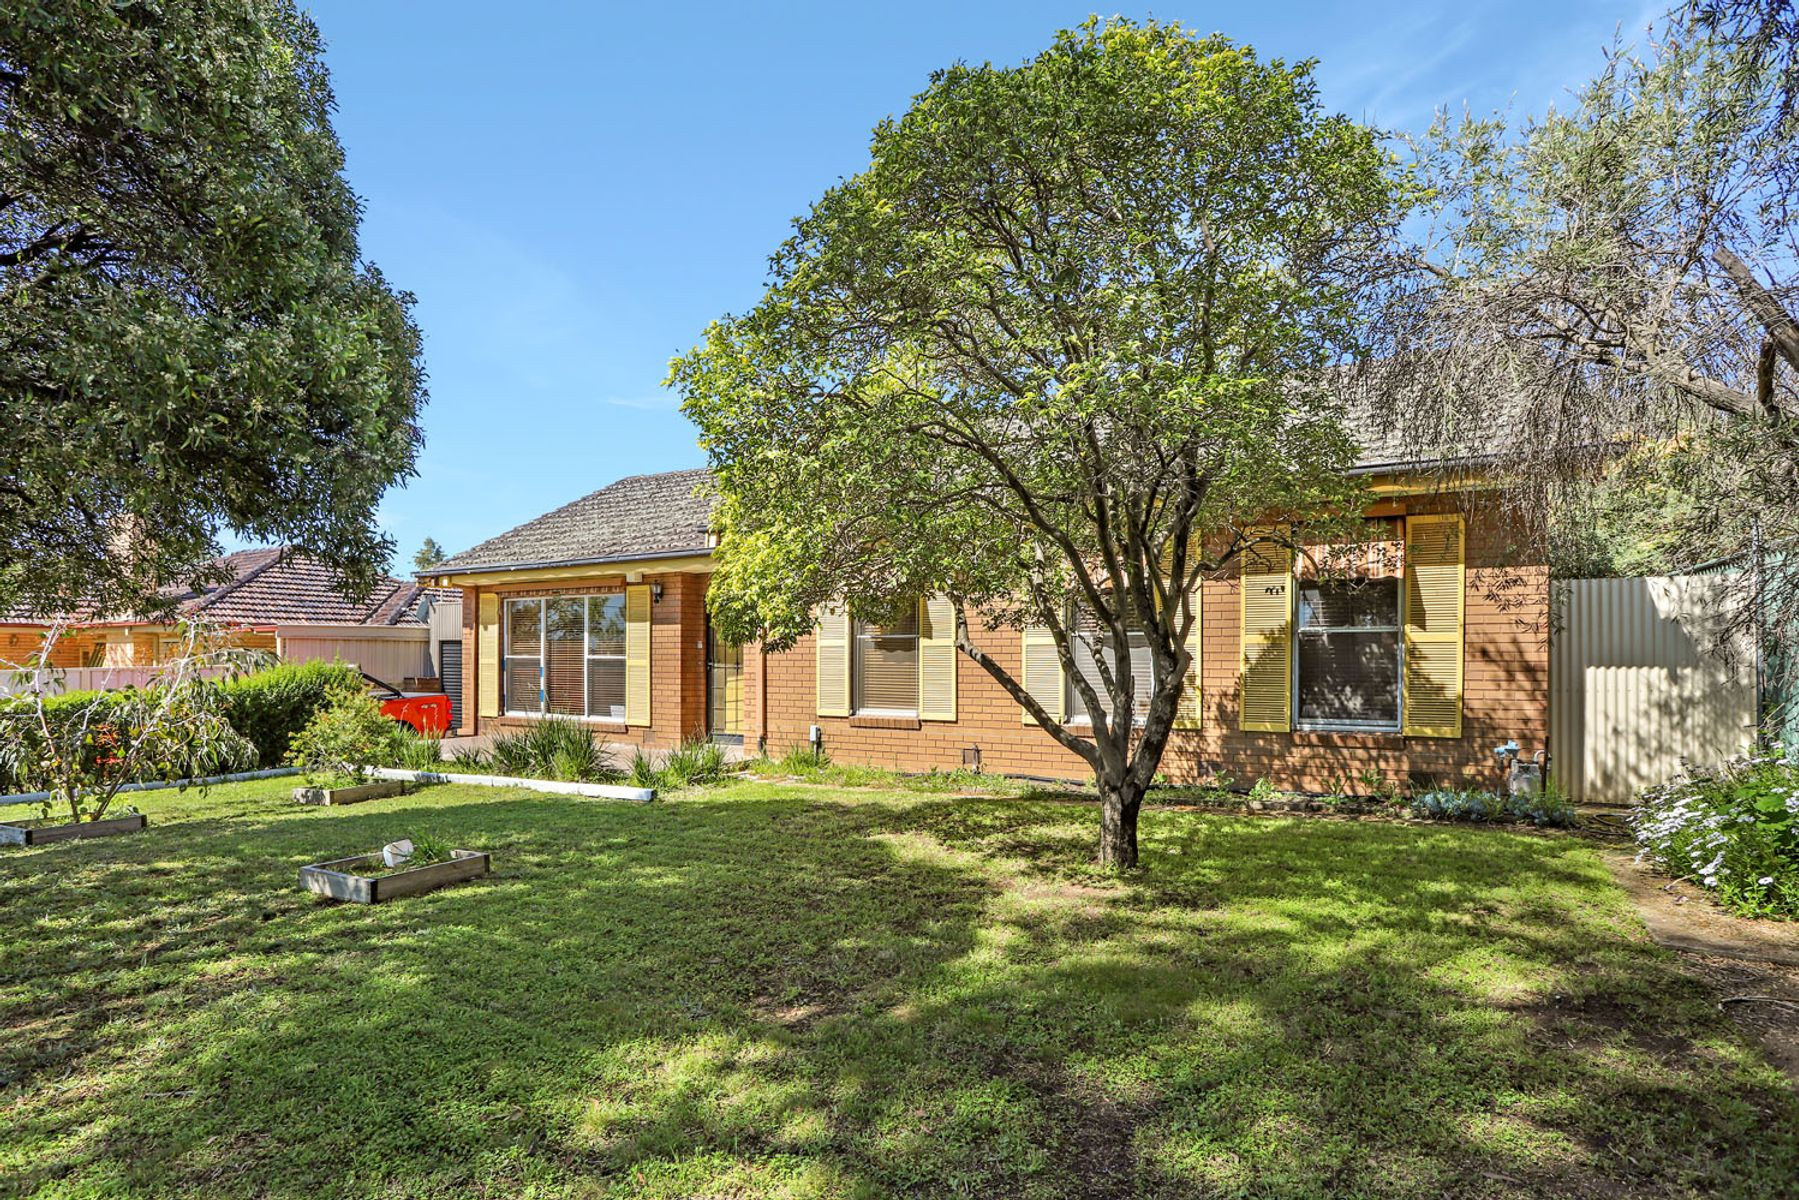 30 Bannister Street, North Bendigo, VIC 3550